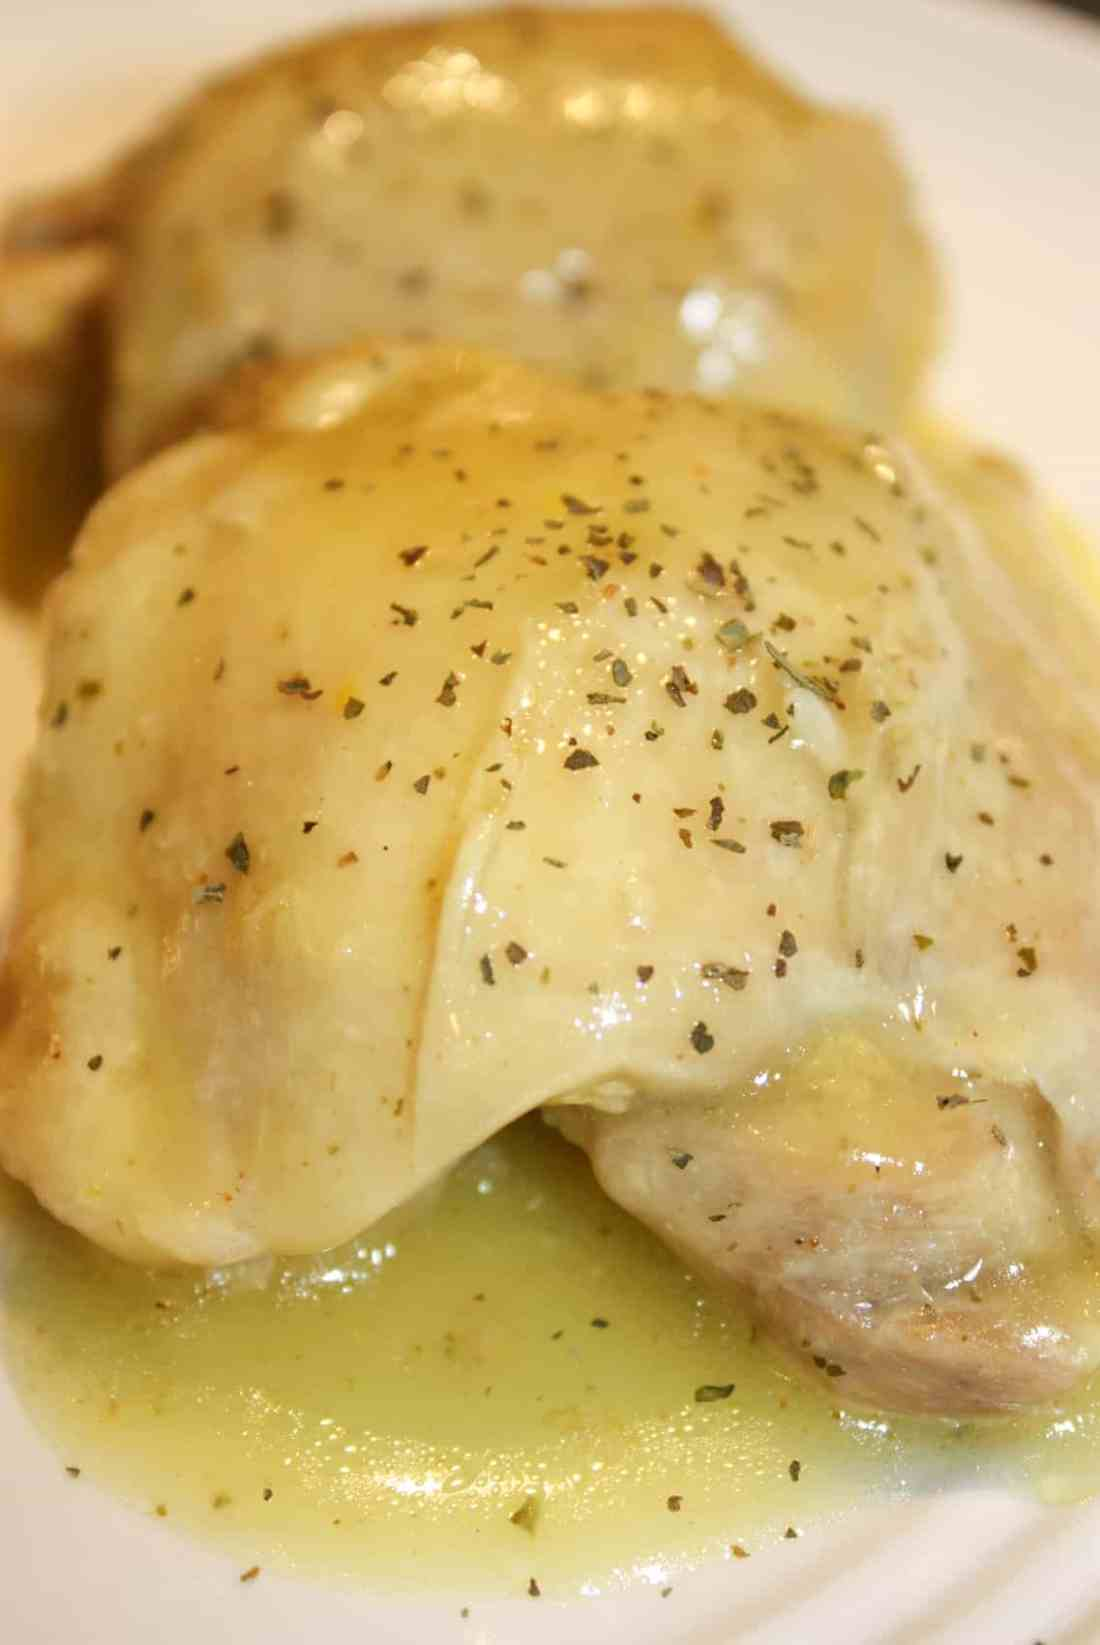 Instant Pot Lemon Chicken is a great way to prepare chicken thighs. The tastiest part of this quick and easy recipe is the tangy lemon sauce that is poured over the chicken after it is cooked.